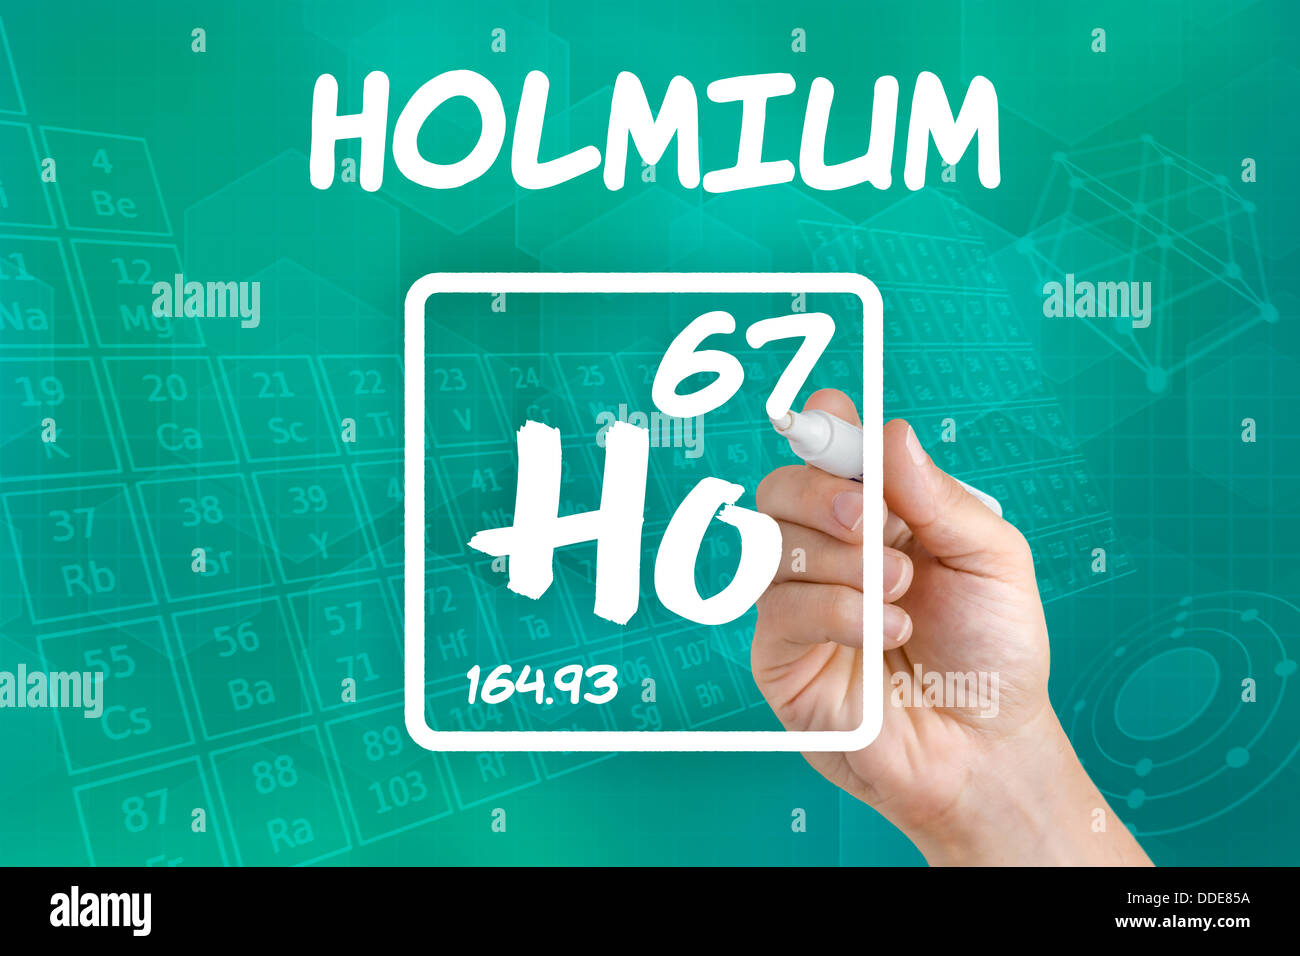 Symbol For The Chemical Element Holmium Stock Photo 59935382 Alamy